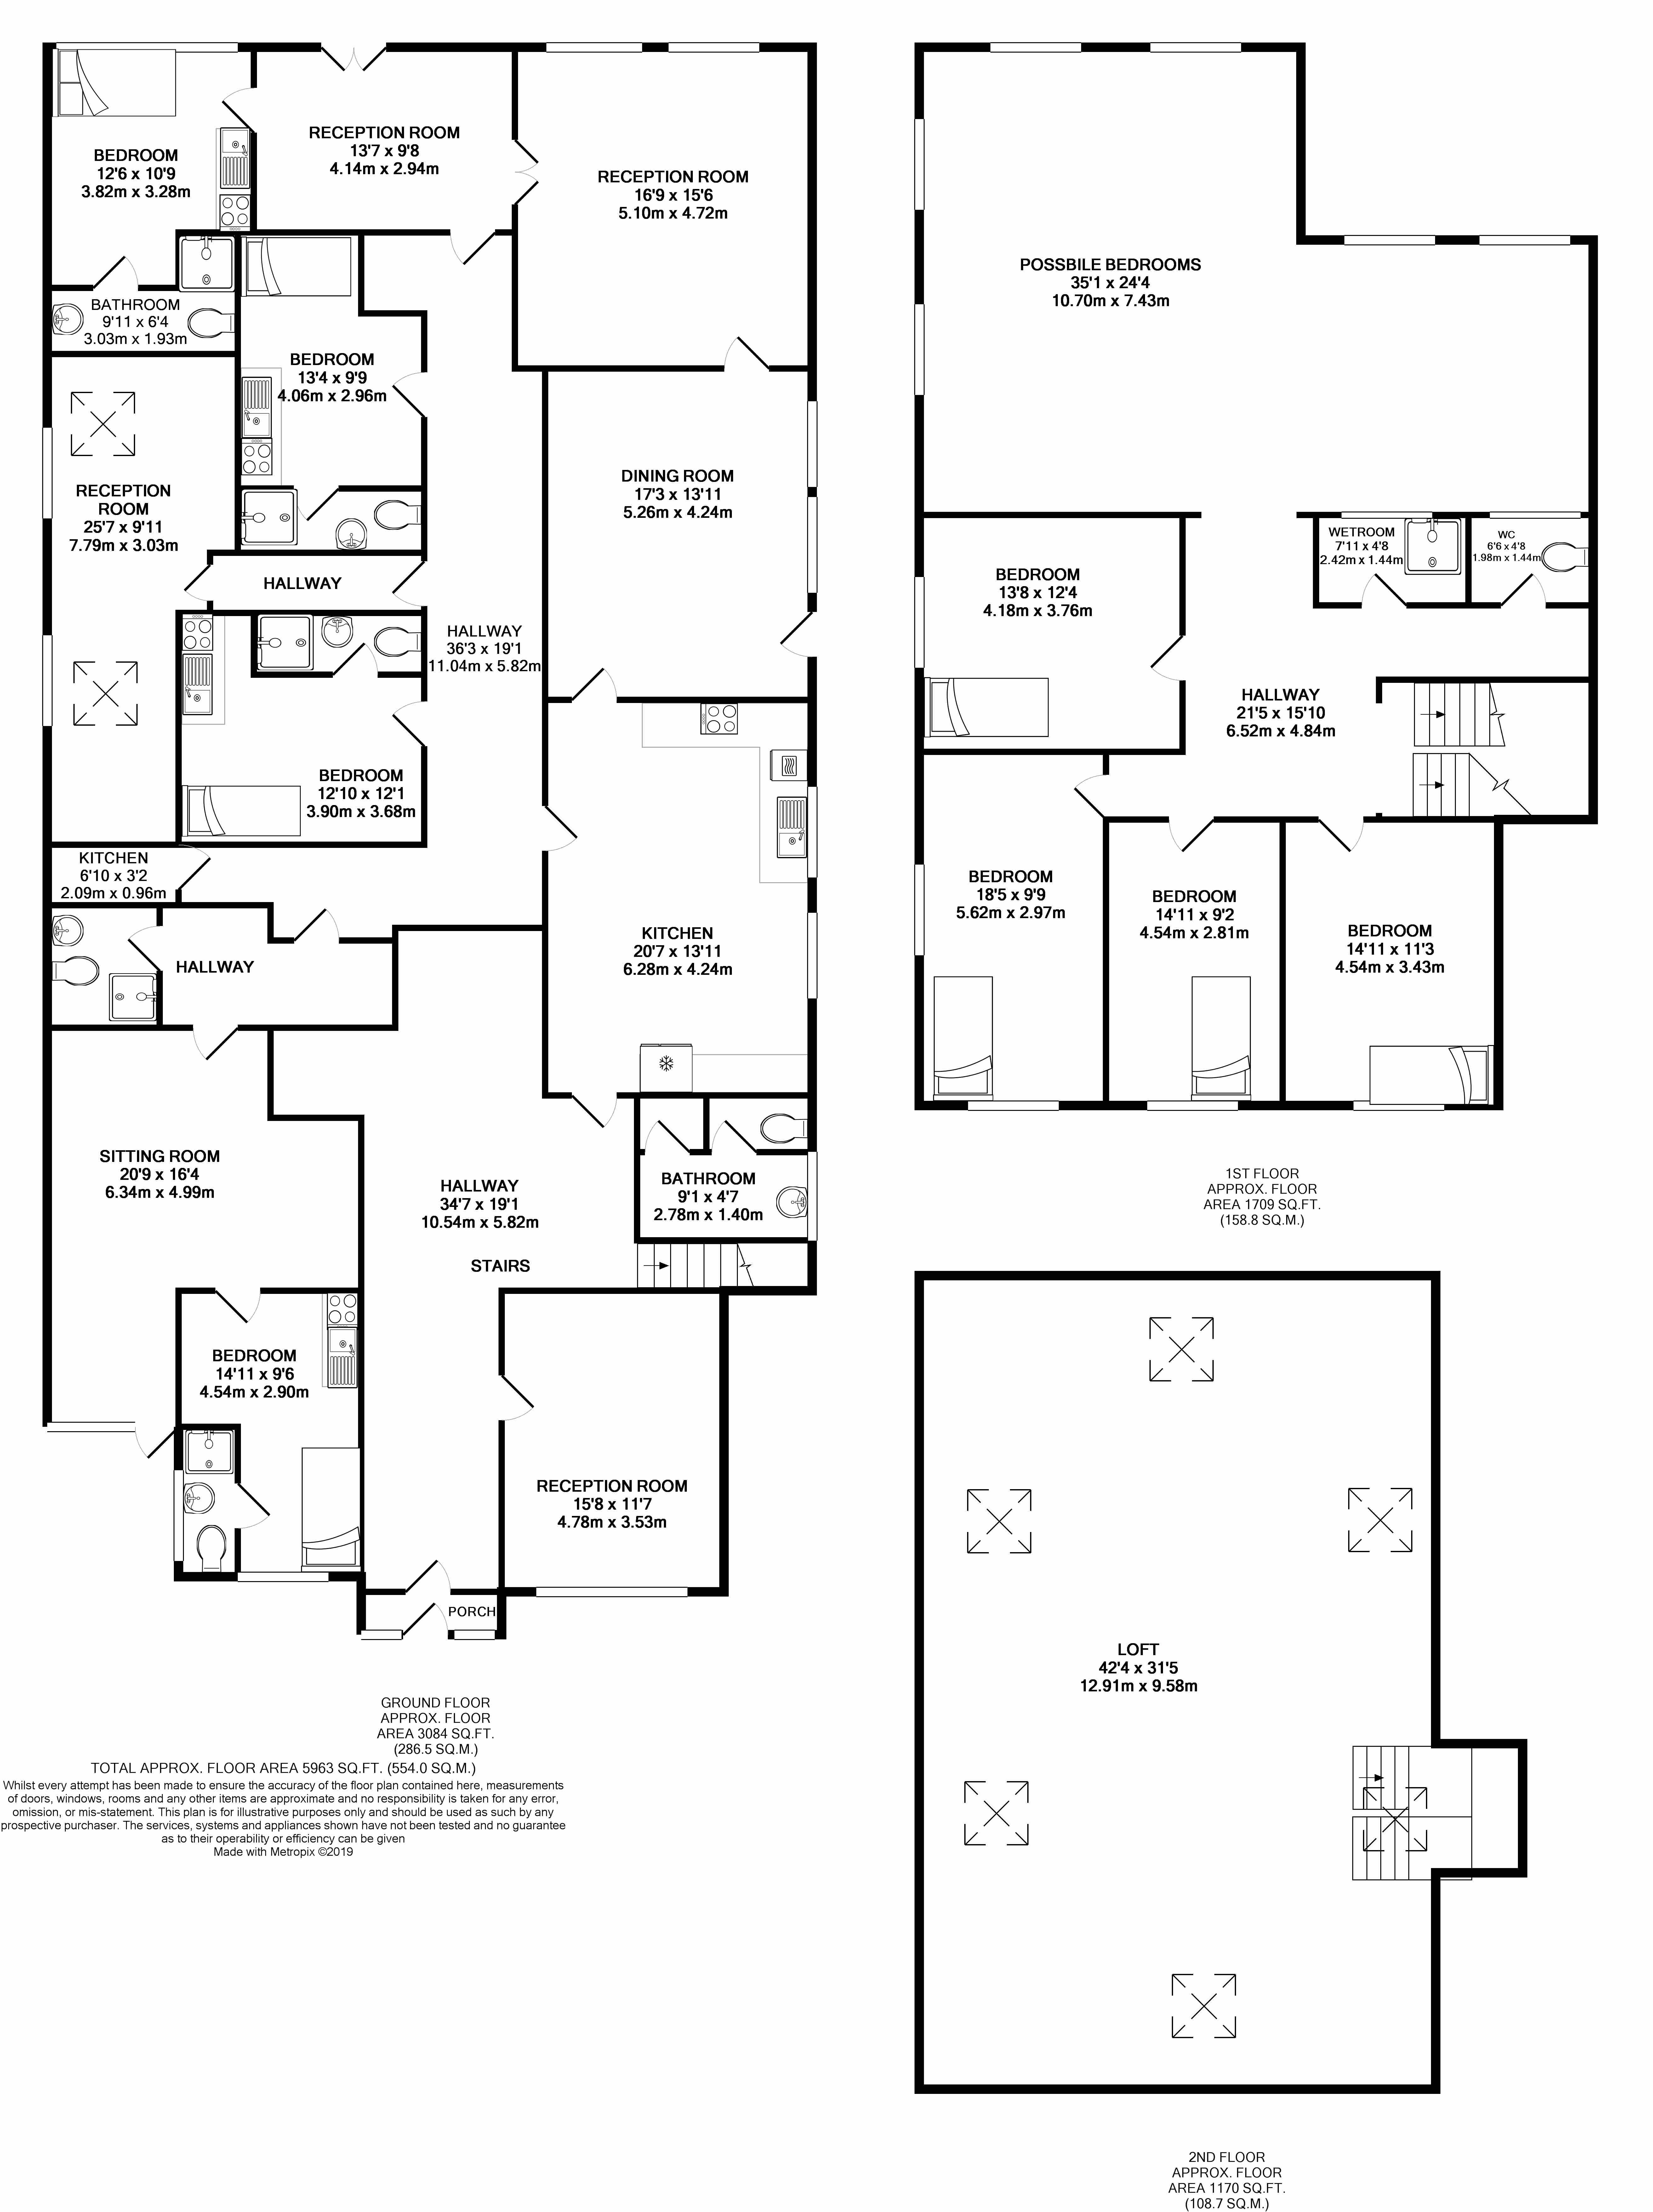 Floorplans For Harrowdene Road, Wembley,HA0 2FL